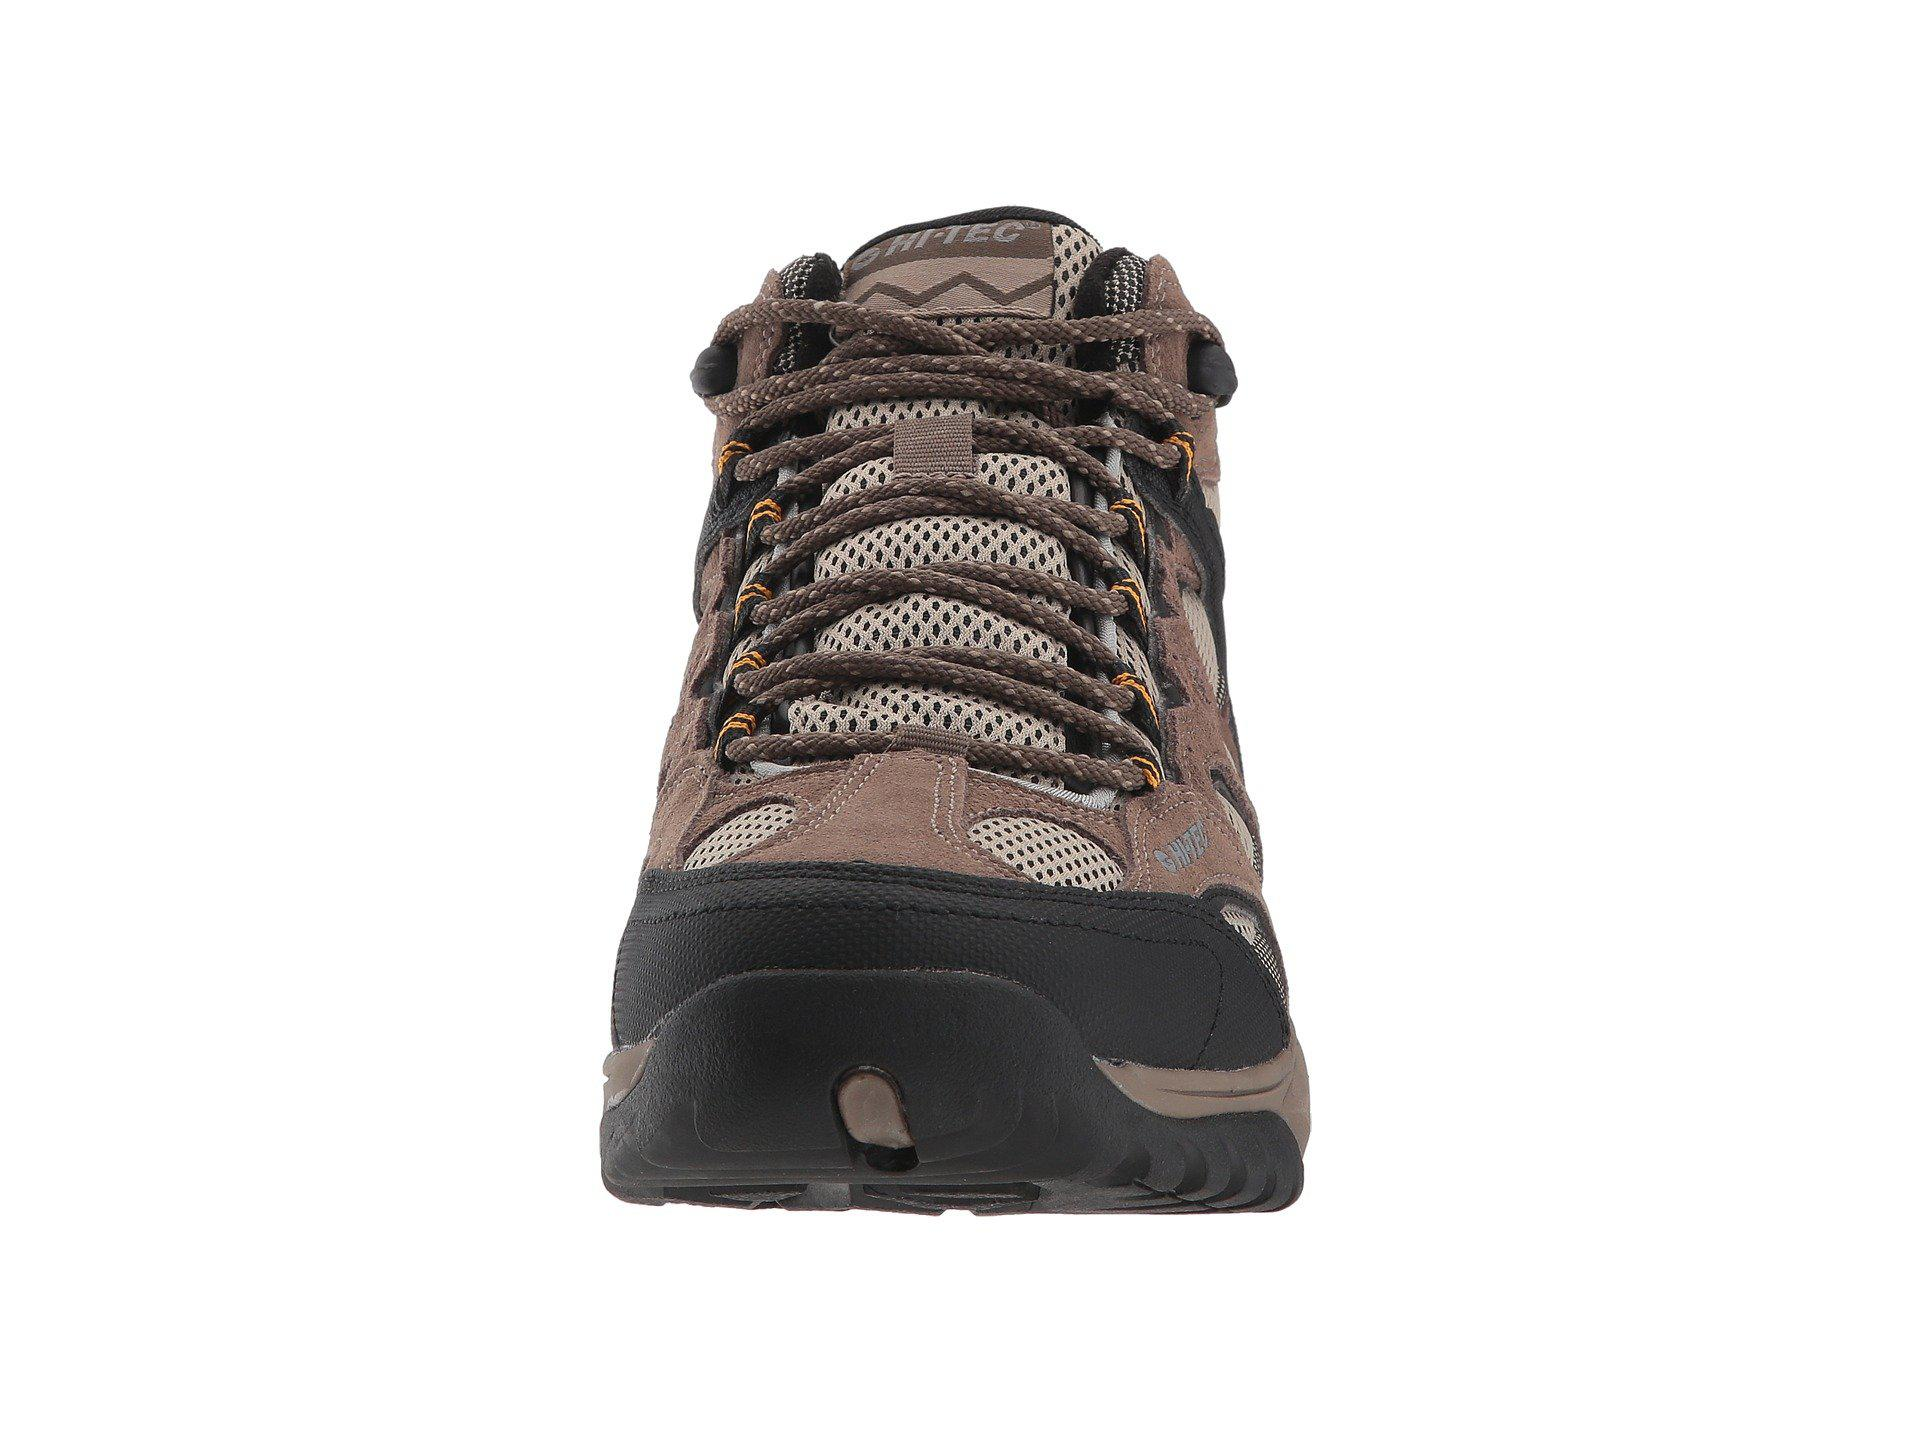 78427ebca4b Hi-tec Brown V-lite Wildfire Mid I Waterproof (taupe/dune/core Gold) Hiking  Boots for men